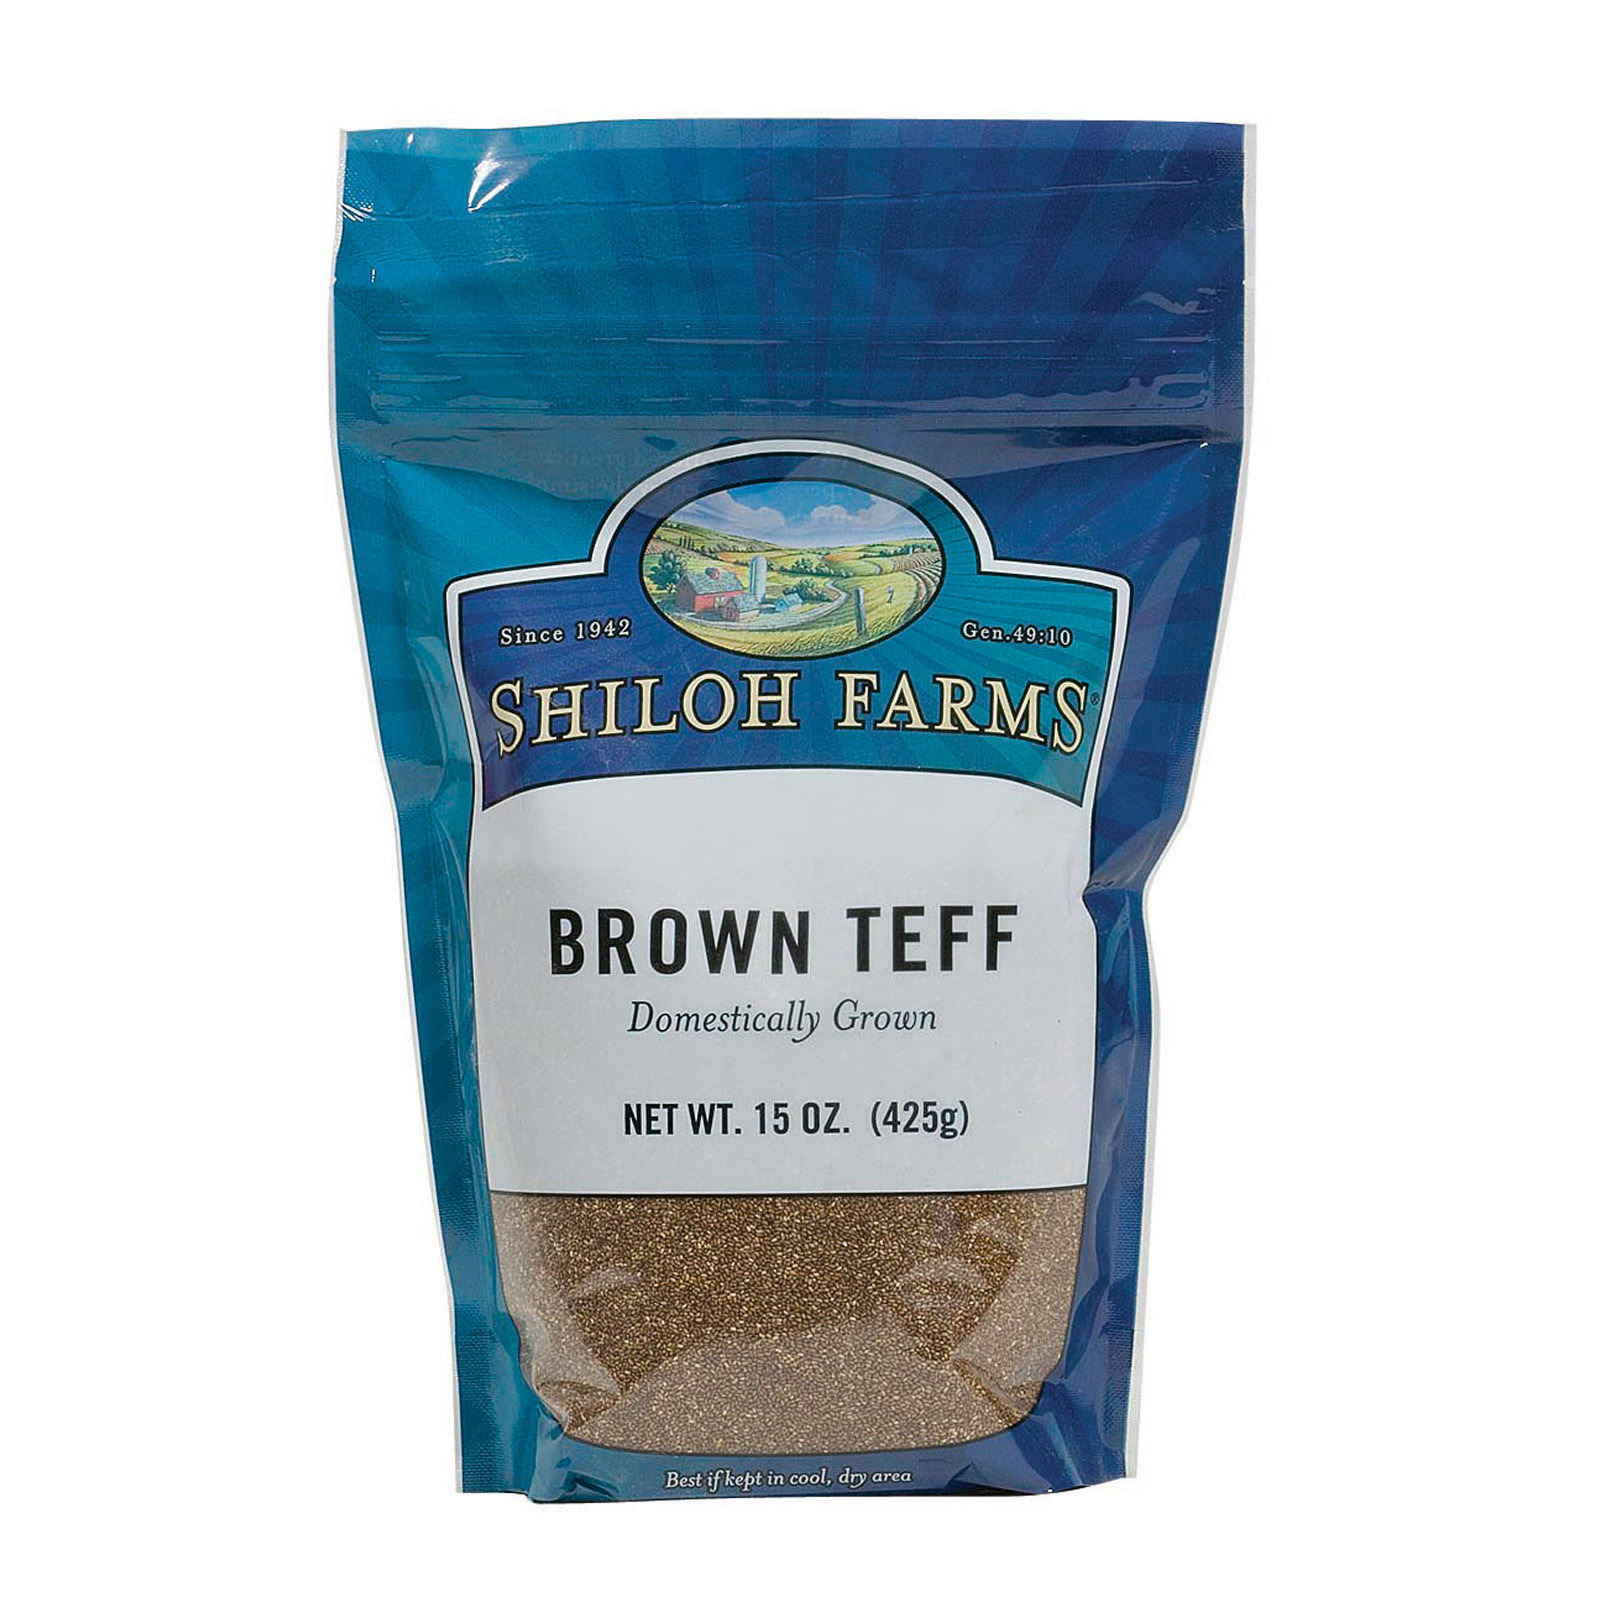 Shiloh Farms Domestically Grown Brown Teff - Case of 6 - 15 oz.